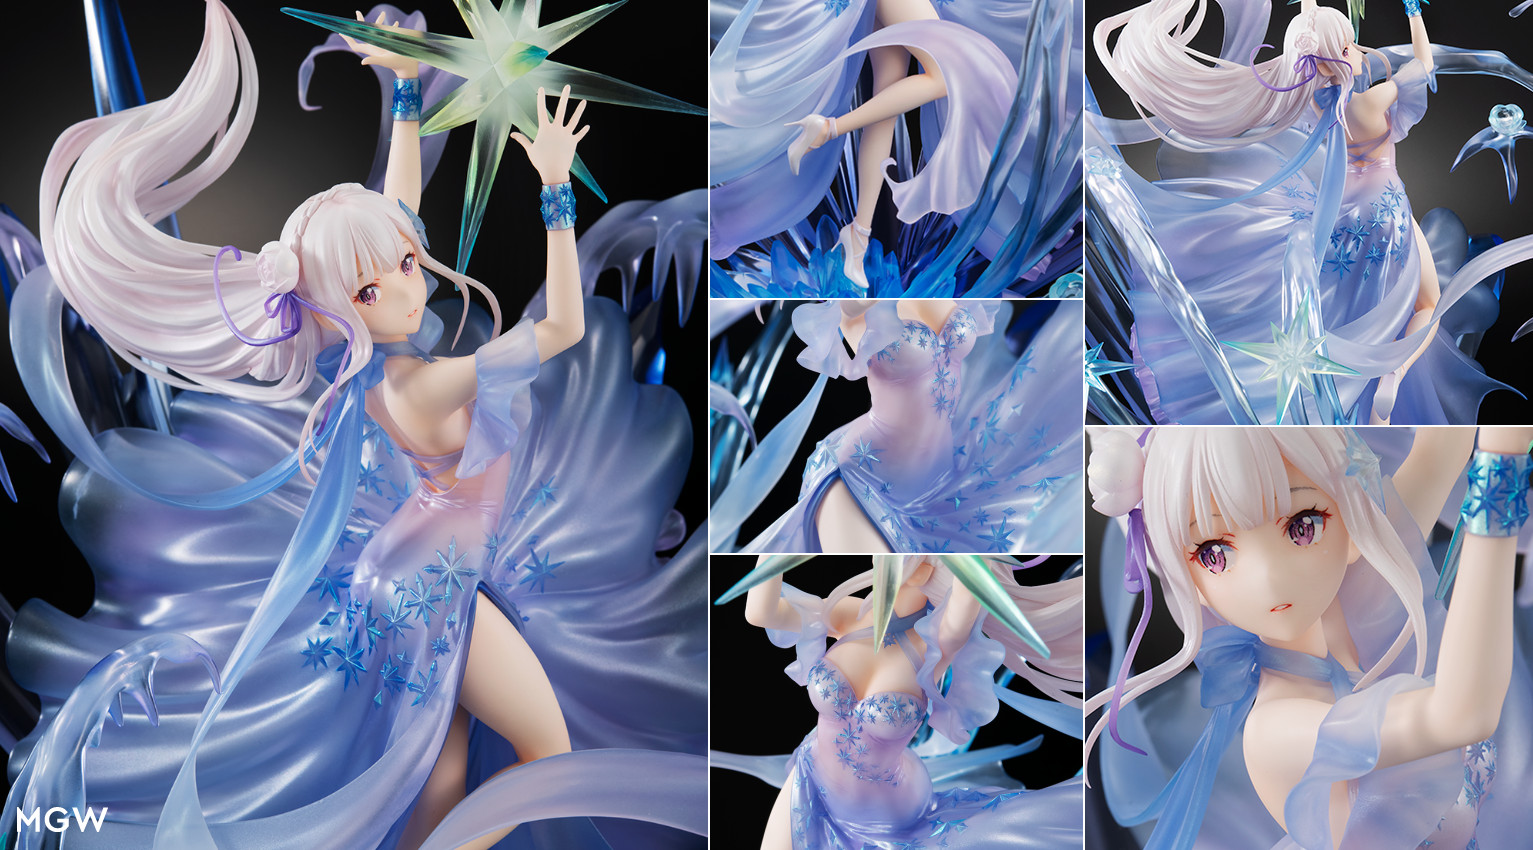 Emilia Crystal Dress by SHIBUYA SCRAMBLE FIGURE from ReZERO Starting Life in Another World